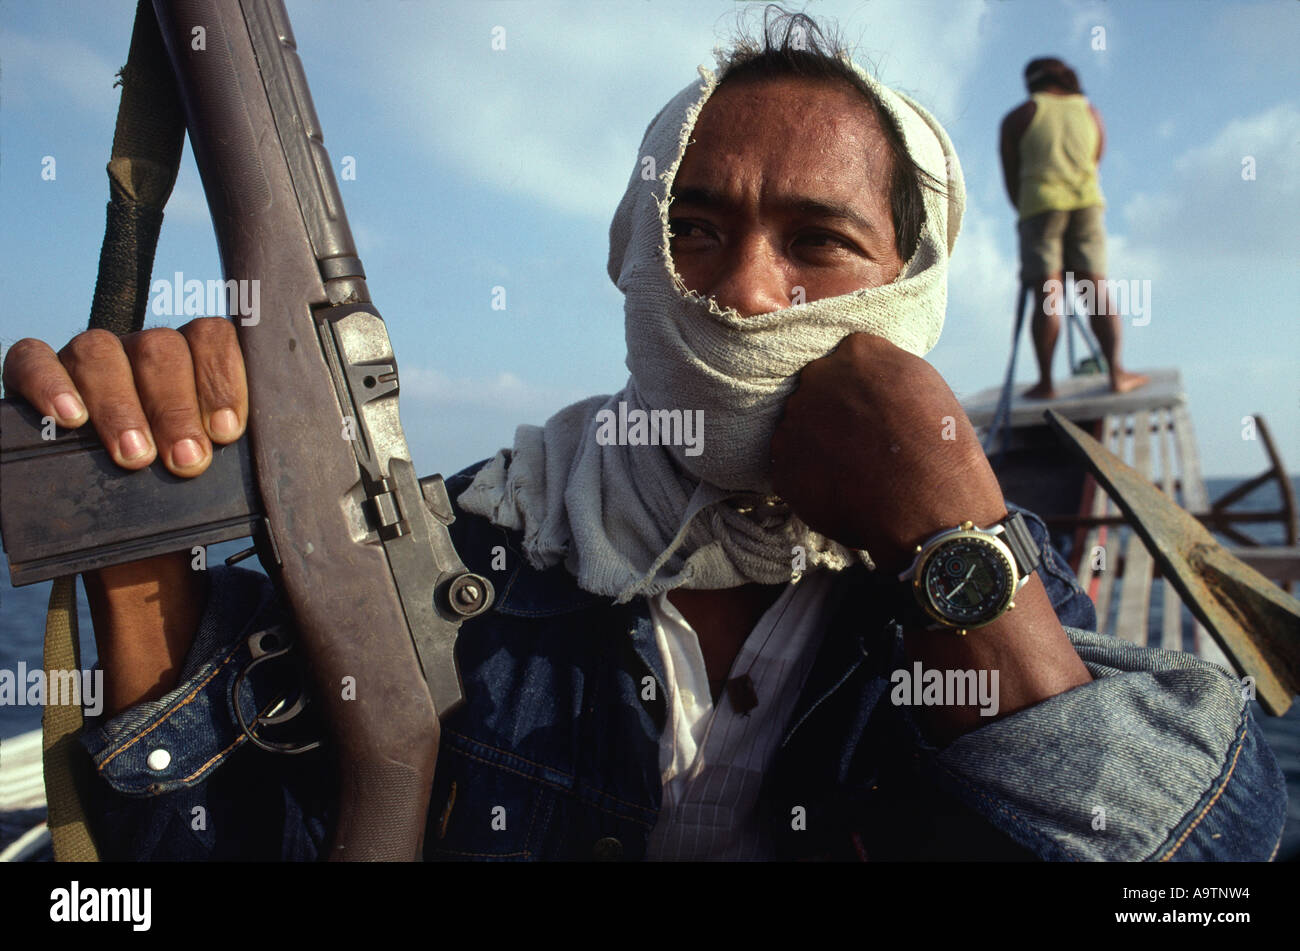 Pirate Captain Ronnie wears a watch he stole on a raid. He operates in the south China Seas with his crew of 5. - Stock Image